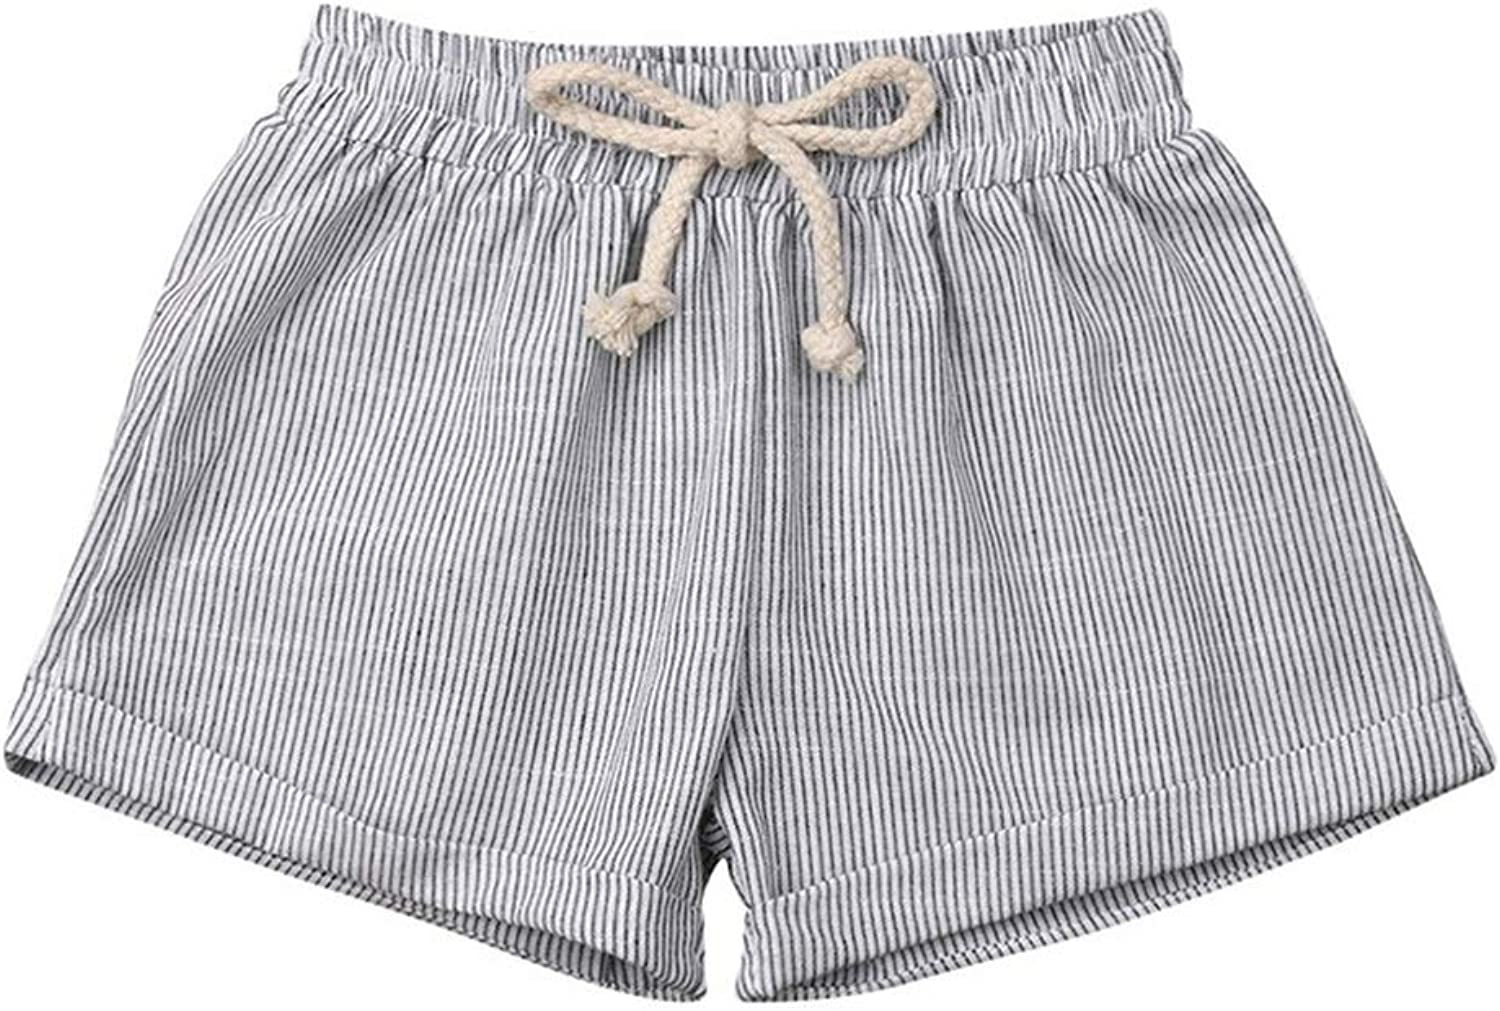 Kid Summer Casual Shorts Baby Bloomers Boy Girl Cotton Shorts Kids Summer Trousers Pants